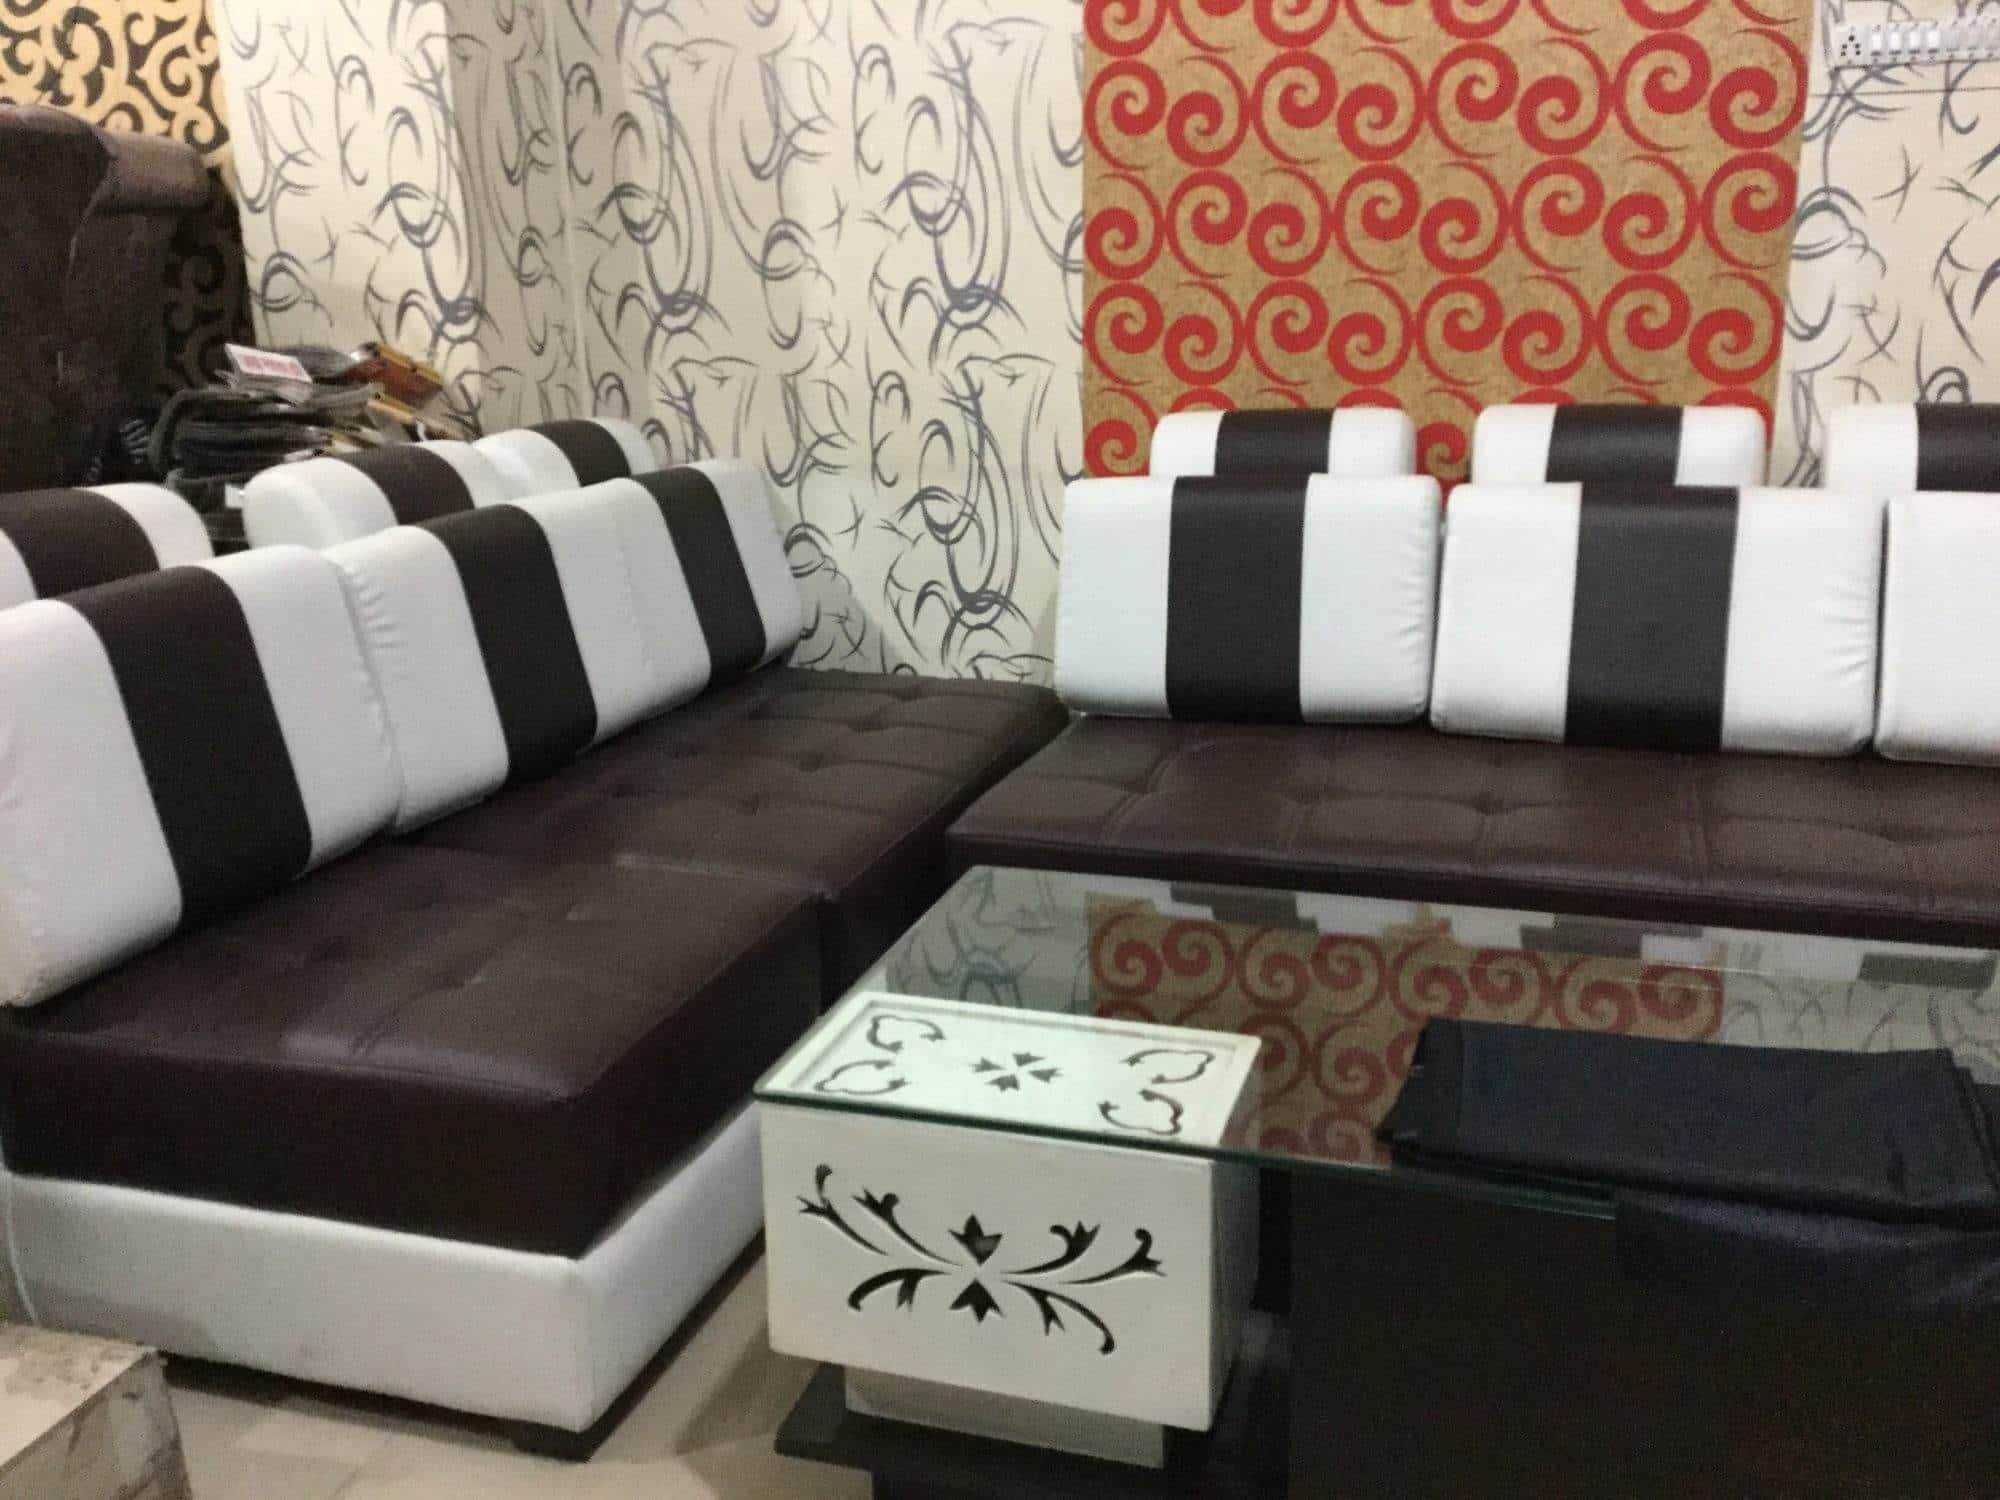 Saleem furnitures kirti nagar sofa dealers in delhi justdial